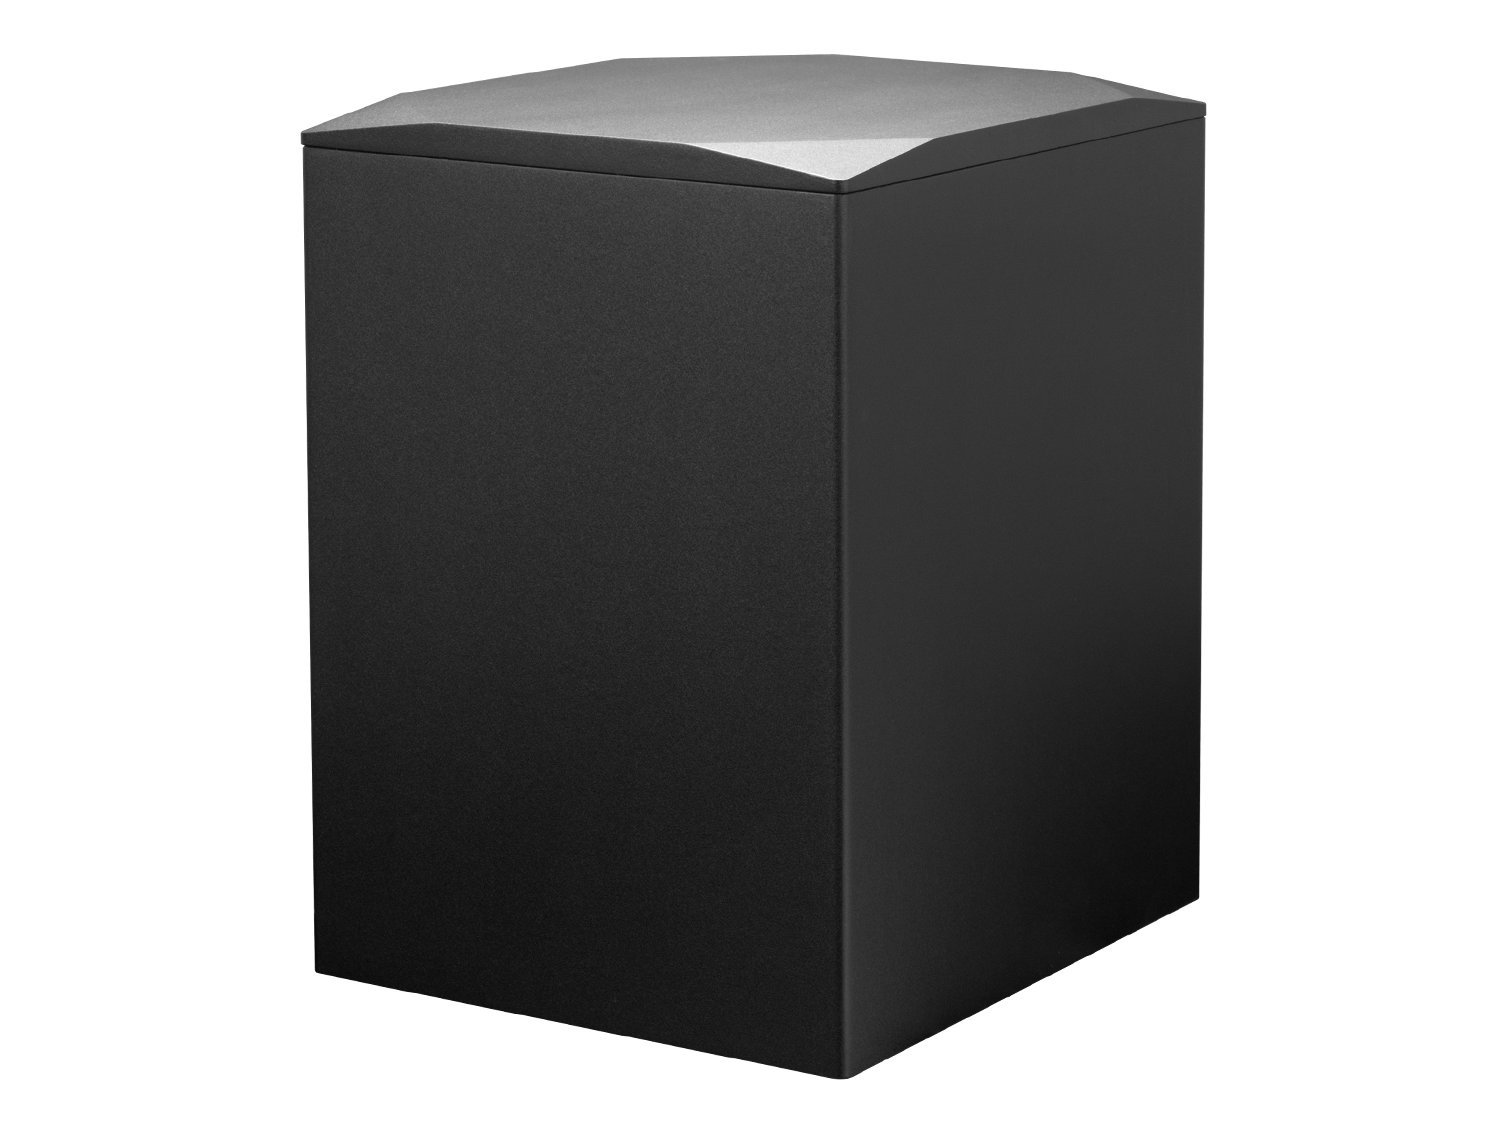 Emotiva Audio 150 Watts 8-Inch Subwoofer black (BasX Sub8) by Emotiva Audio